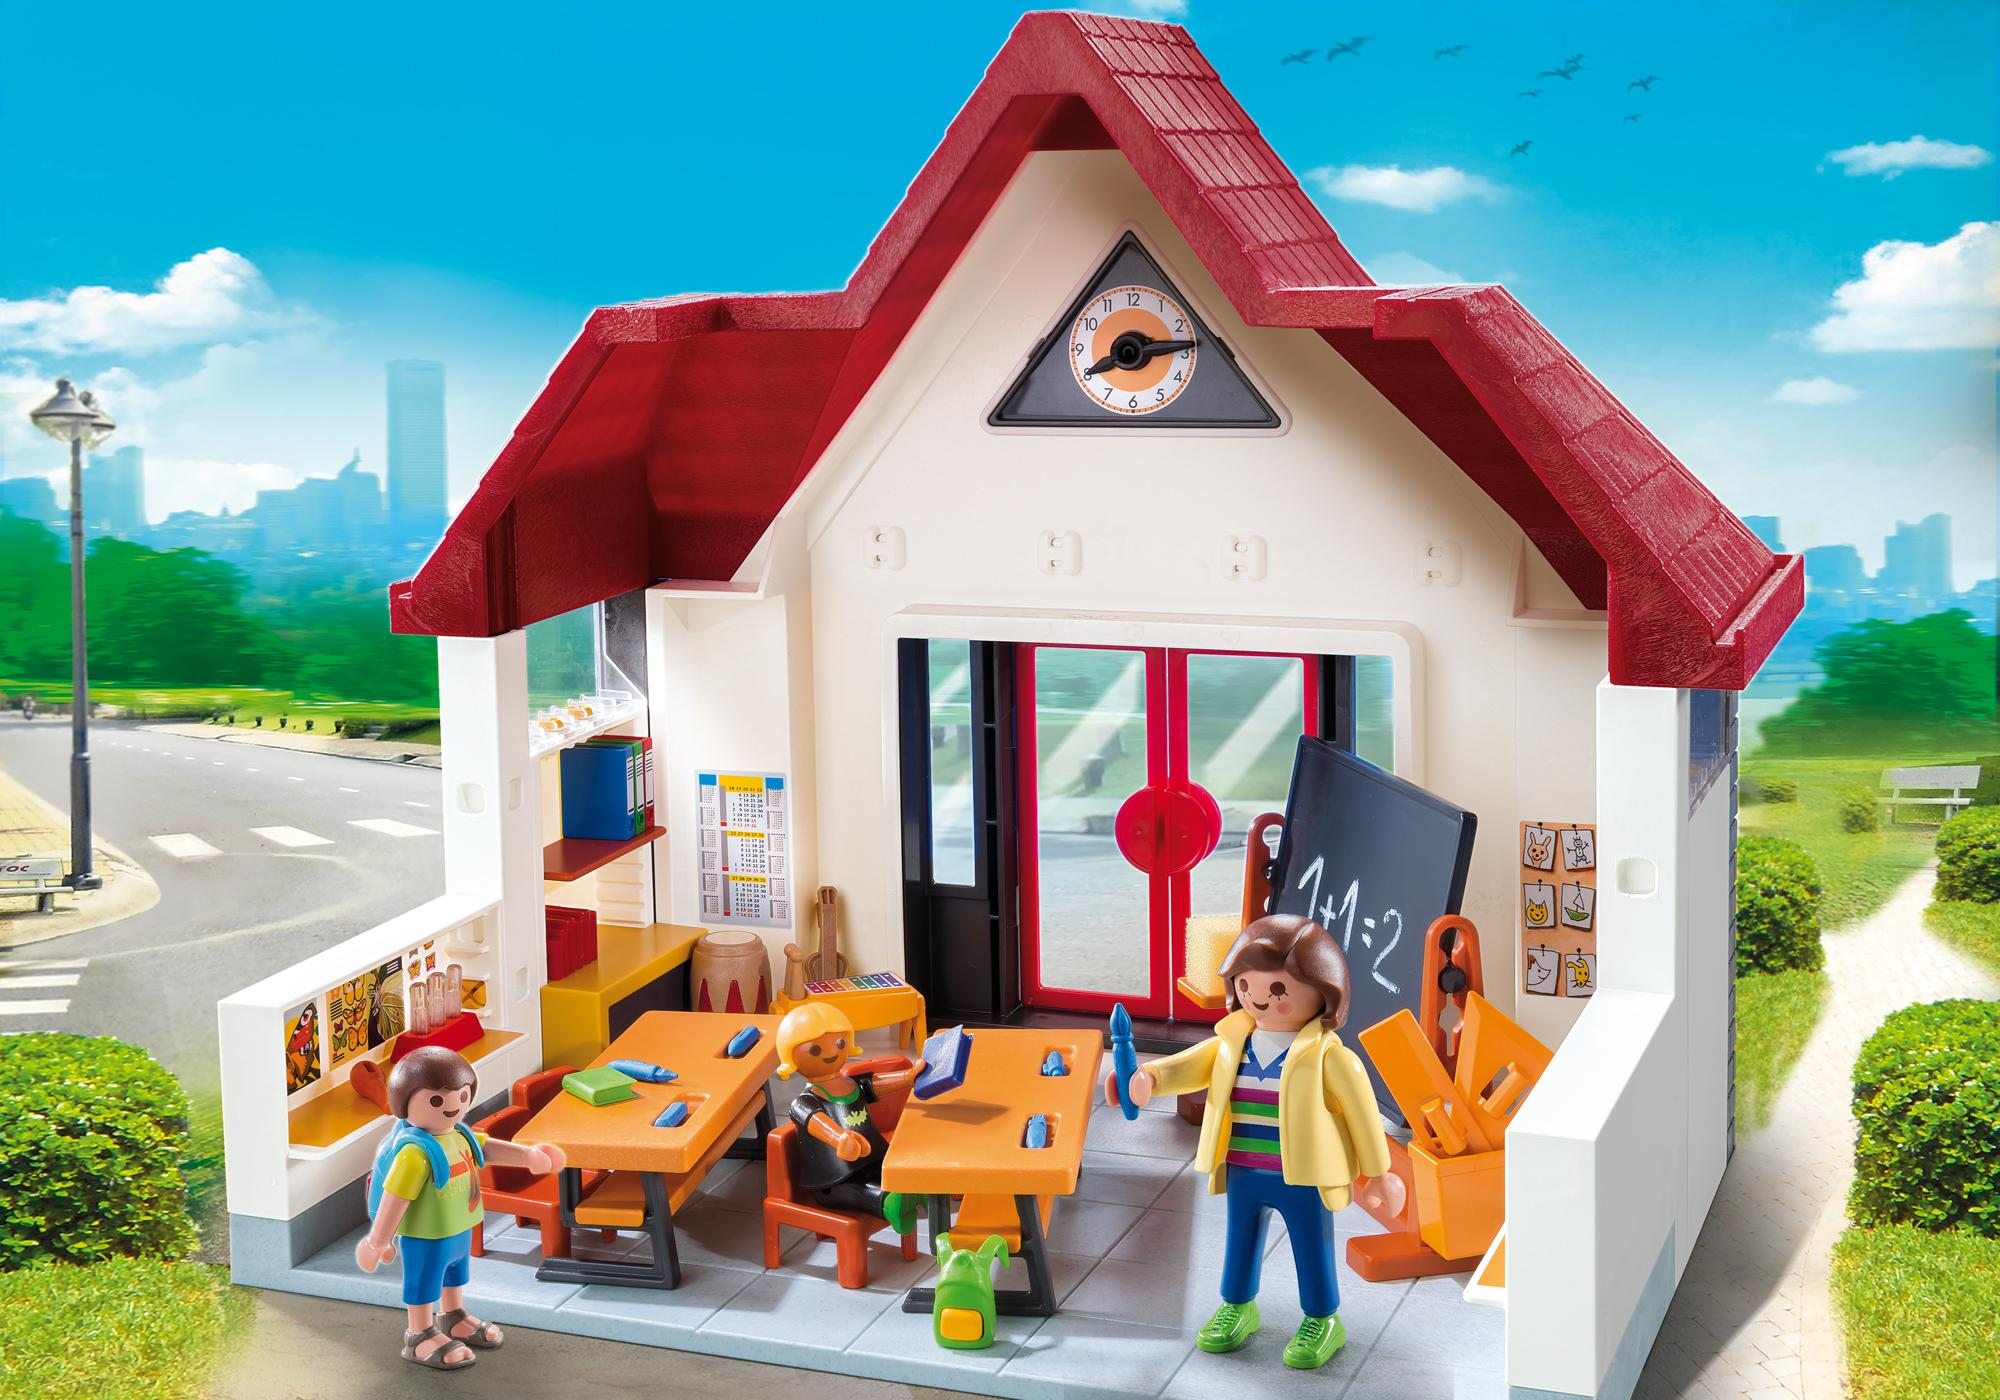 http://media.playmobil.com/i/playmobil/6865_product_detail/Schoolhouse